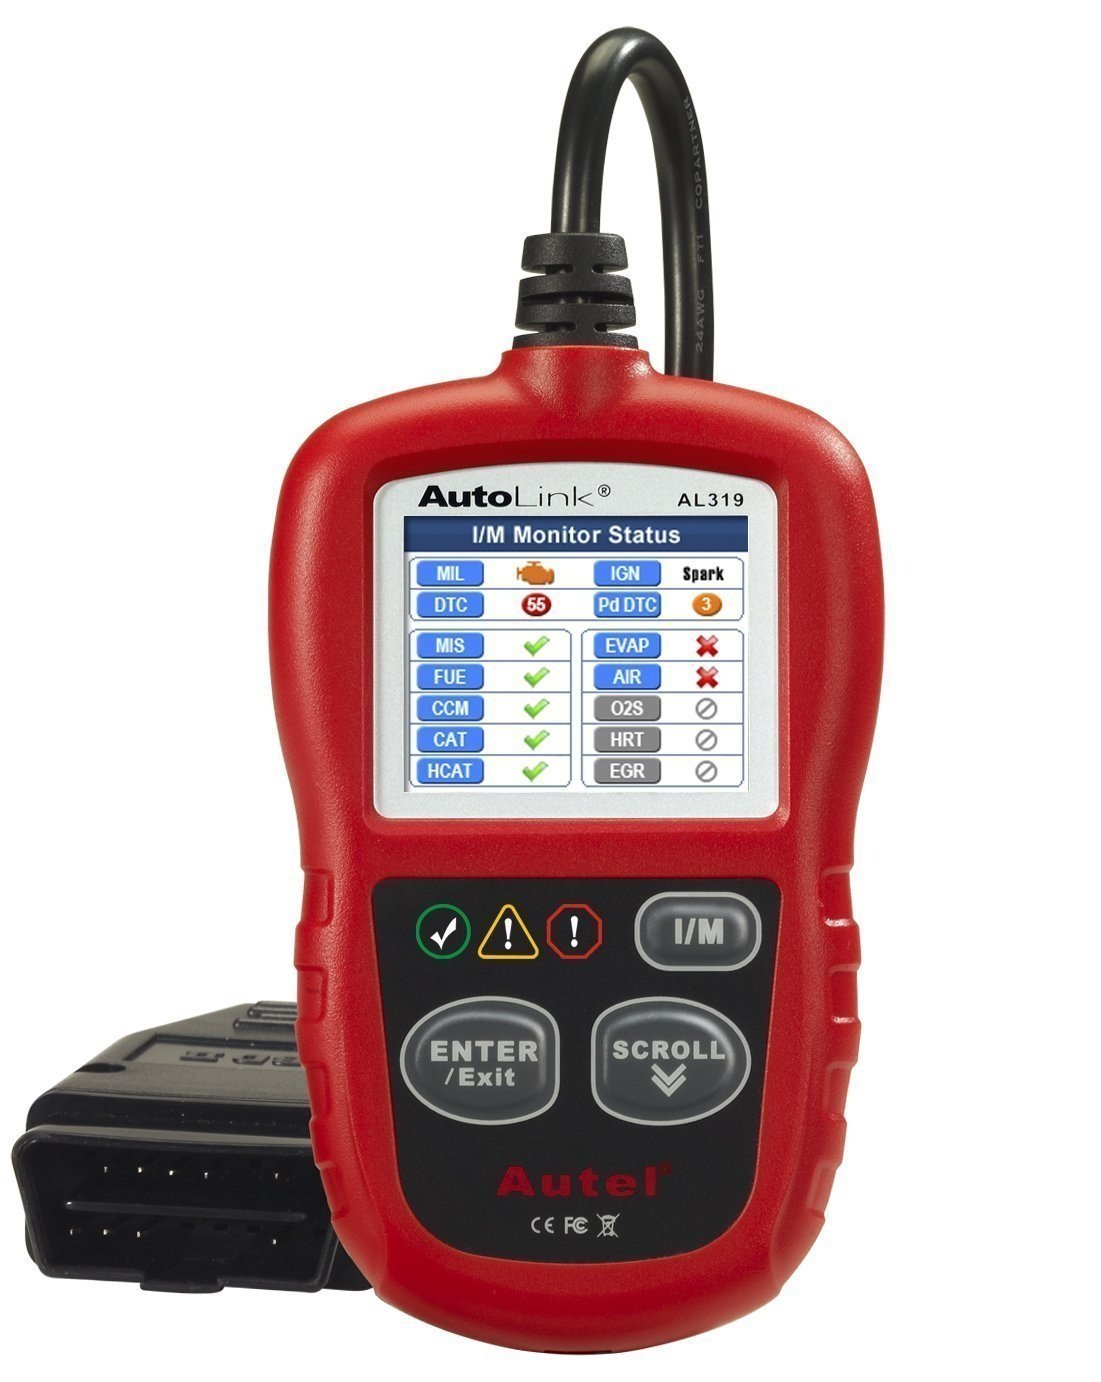 Autel AL319 OBD2 CAN Code Reader Reading and Erasing Codes Check Emission  Monitor Status Scan Tool